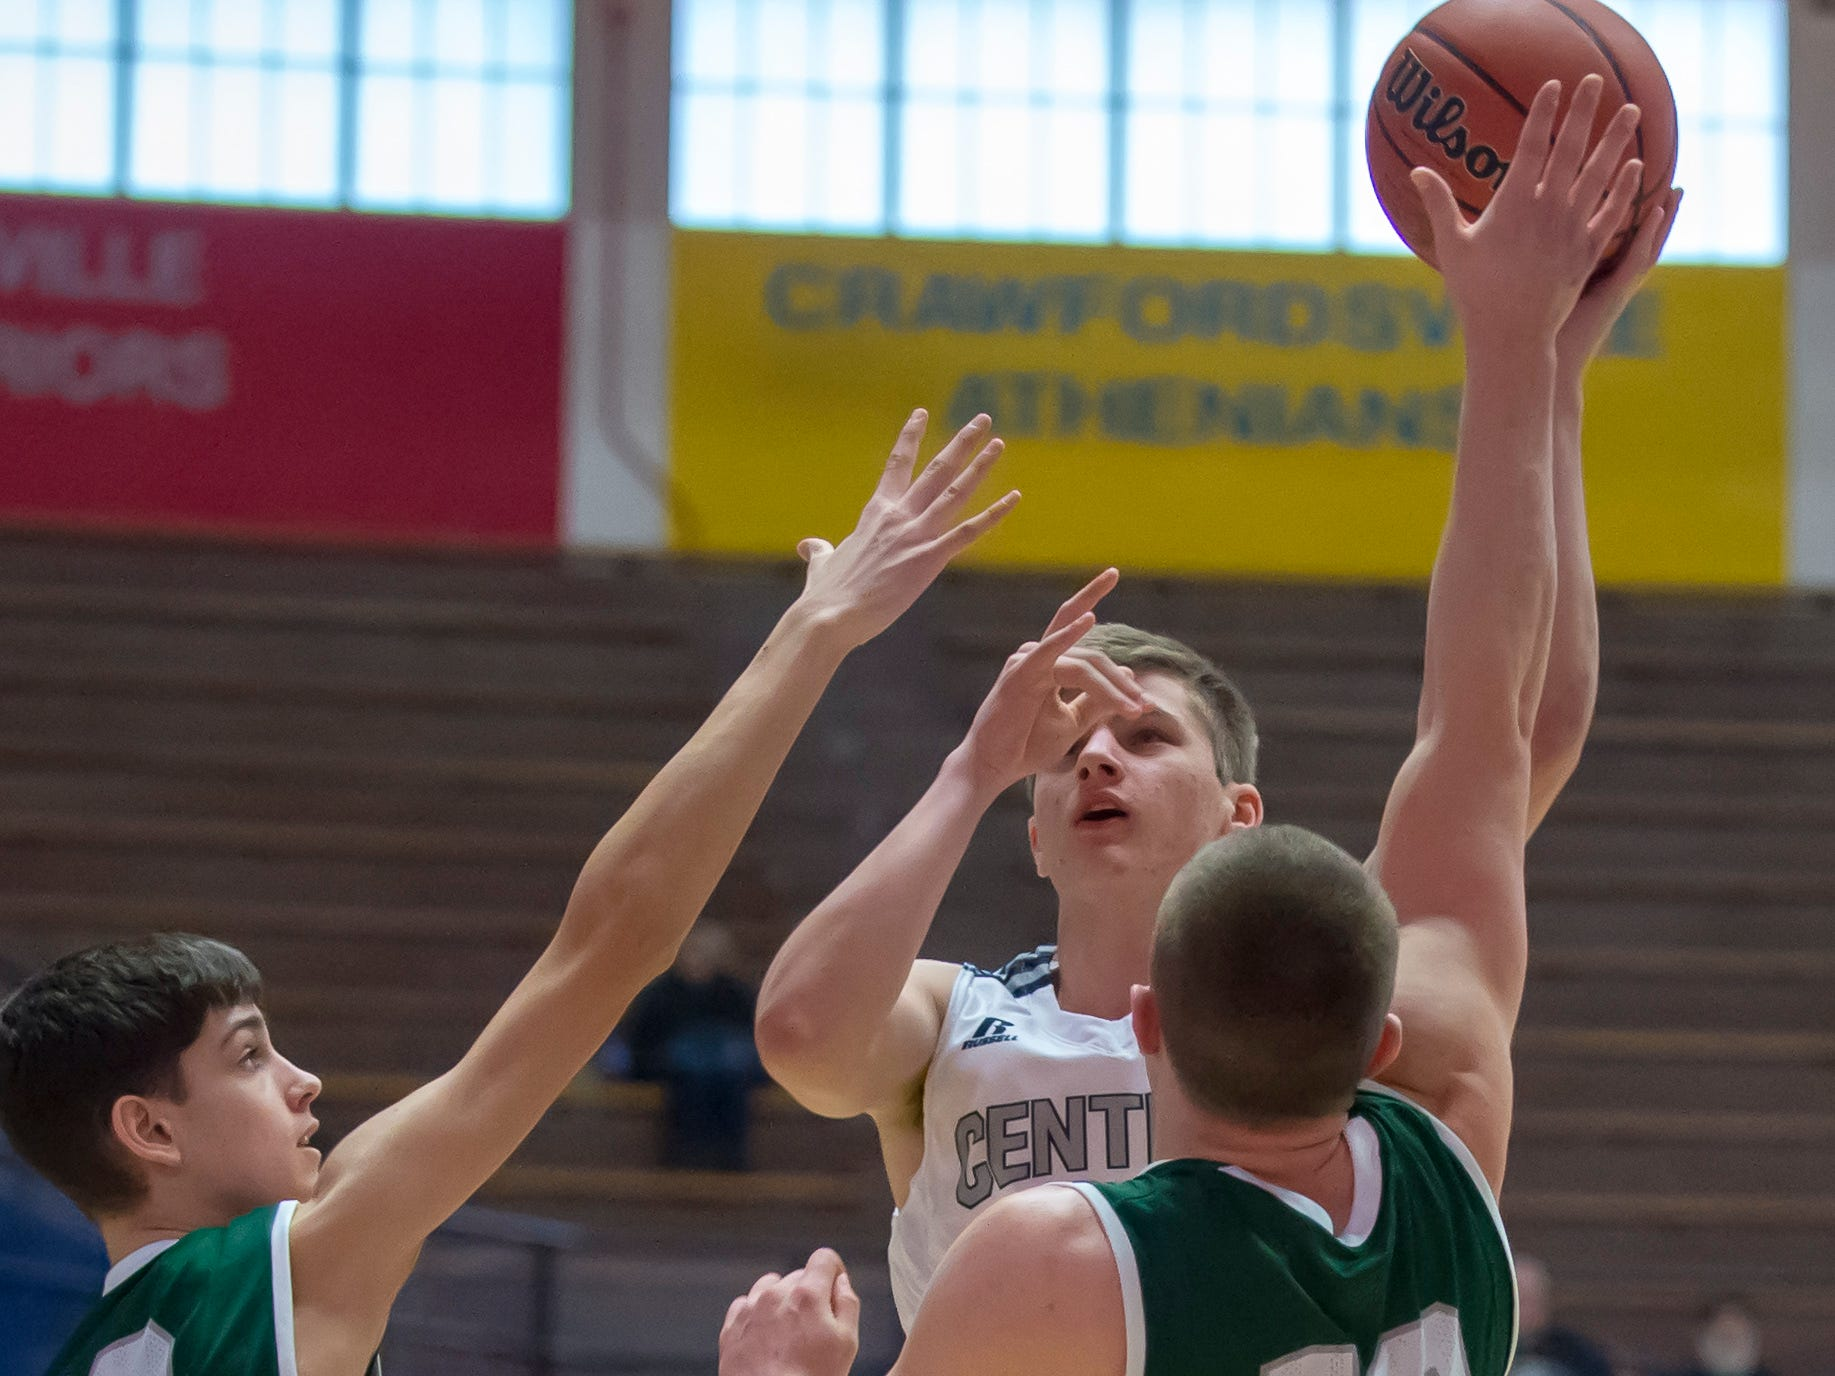 Action from the first round of the Regional between Central Catholic and Randolph Southern from Case Arena on 3/9/19 - Kyle Onken